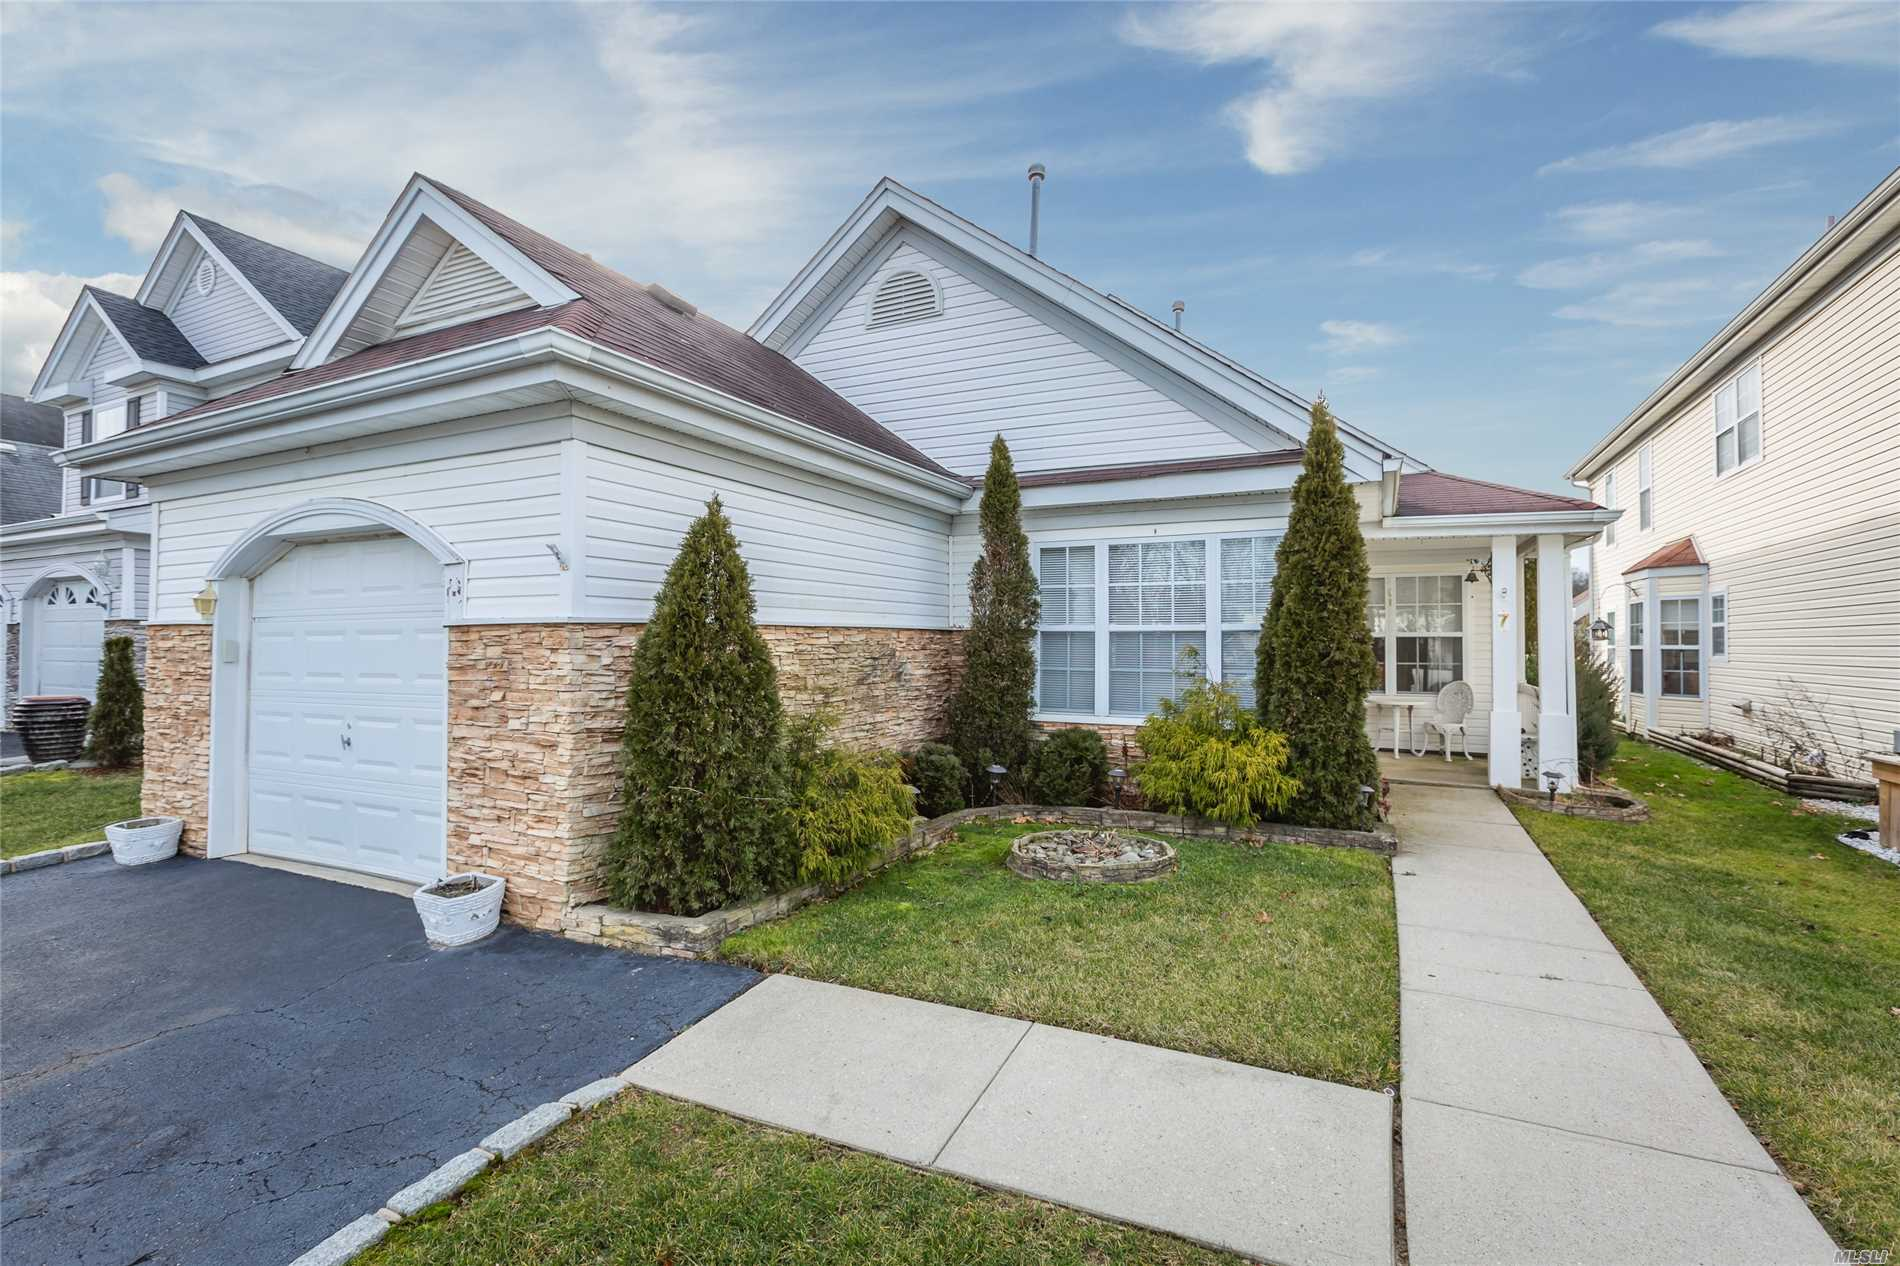 Devon Ranch Home With 2 Bedrooms And 2 Full Baths. Gated Community With Manned Gate. Indoor/ Outdoor Pool, Tennis Courts, Clubhouse, Gym . Additional 1 Month Security Deposit Required For Pet.